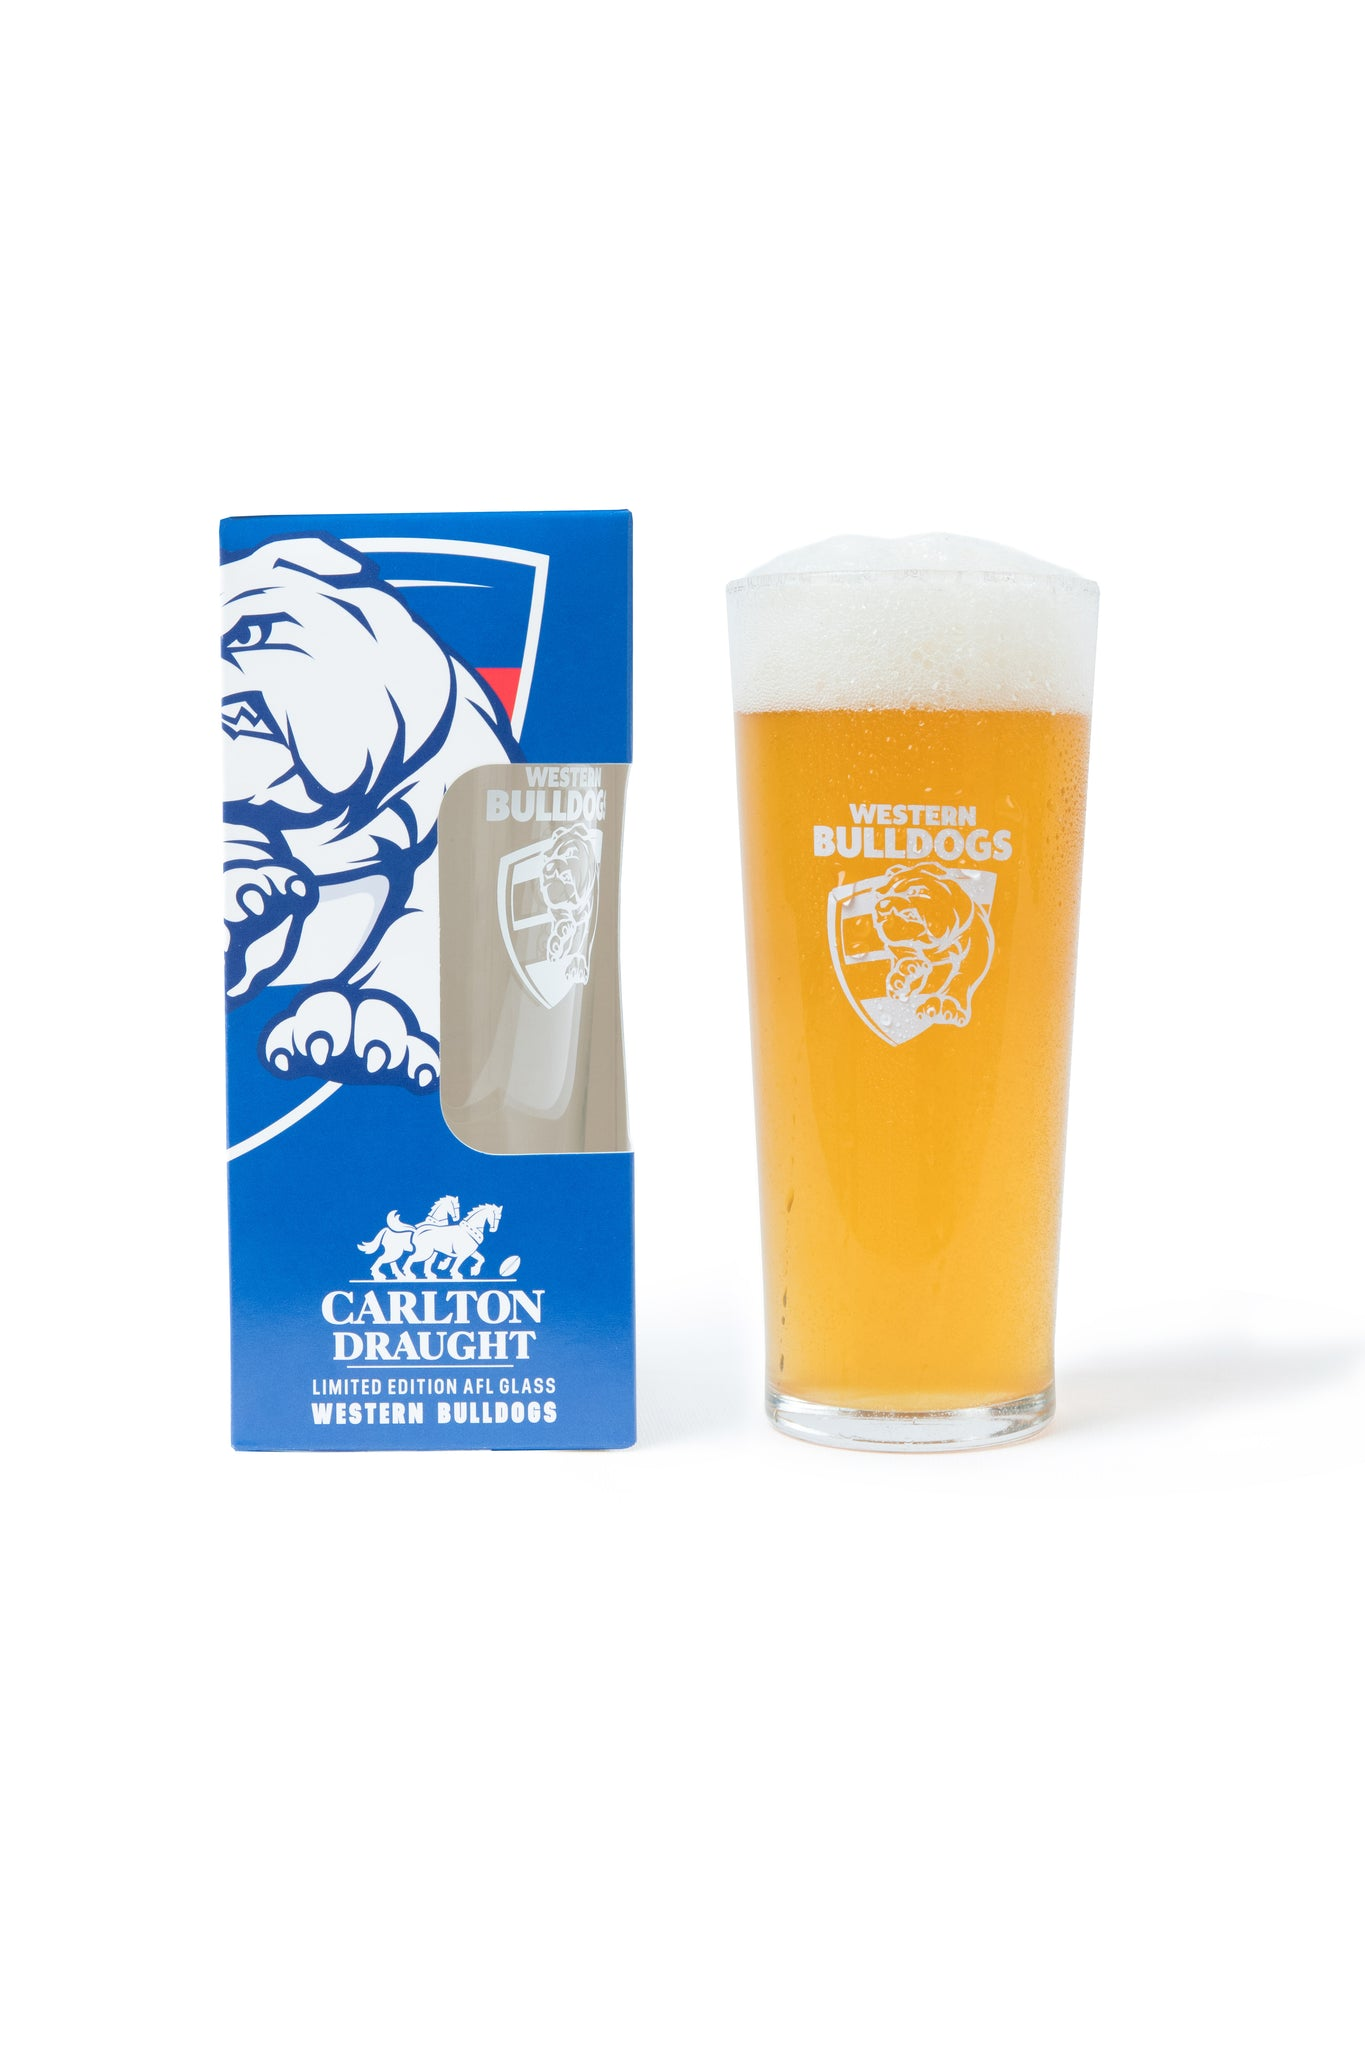 Carlton Draught & Western Bulldogs AFL 425ml Boxed Glass